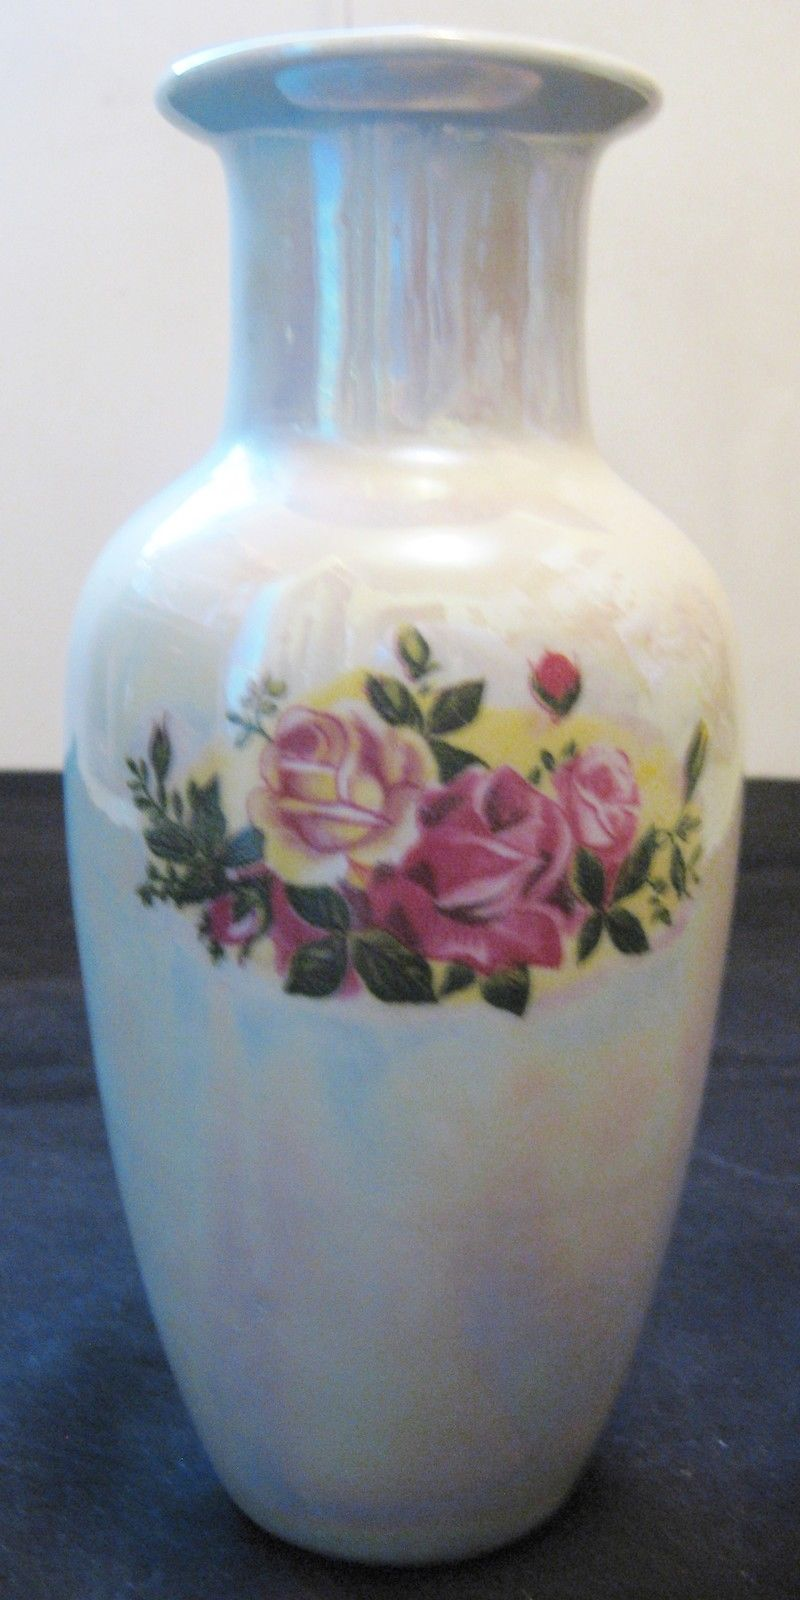 Antique Chinese Western Export Famille Rose Foil Porcelain Vase,19th Century,NR